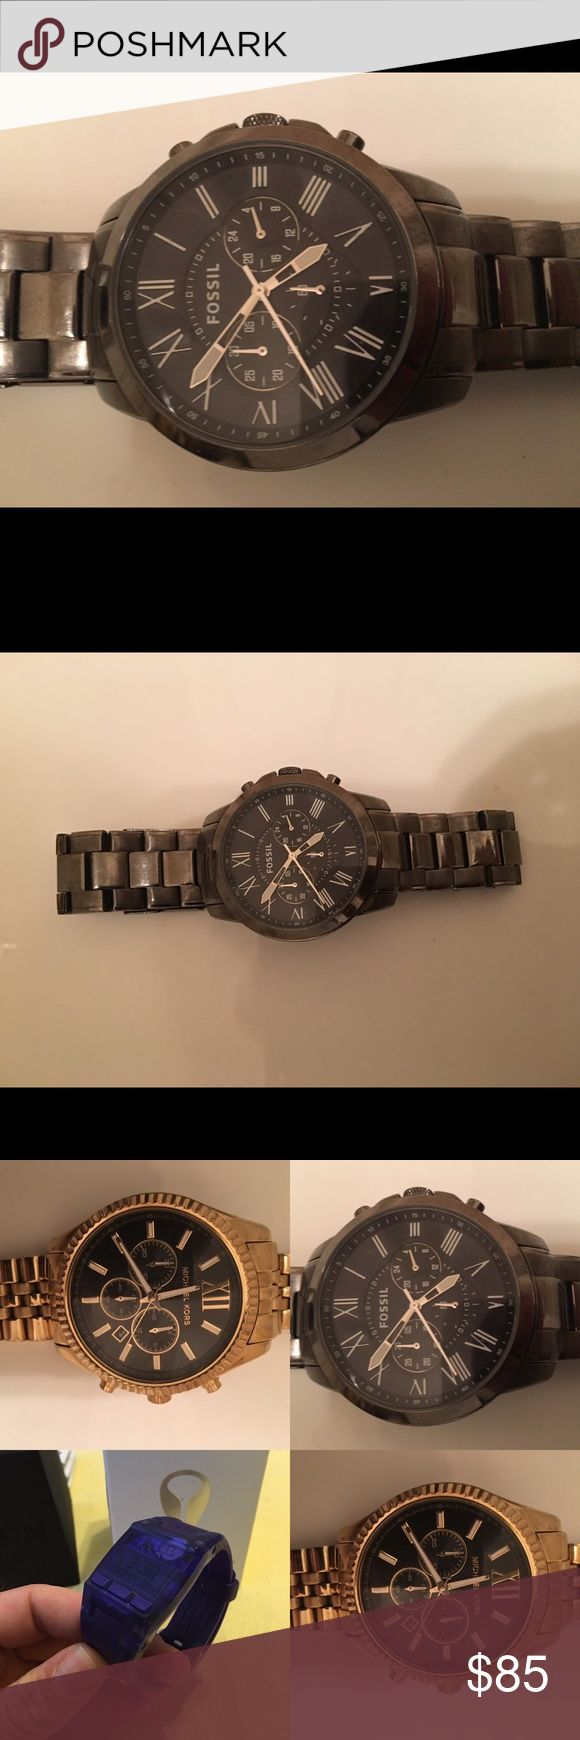 """Fossil Watch Worn once or twice. Making room in my collection for more. This listing is priced to included a professional polish and battery replacement by my jeweler. Because the battery needs to be replaced, I have another listing for this timepiece """"as-is"""" for $25 less. The last photo is of the three watches I am selling that also have a lower listing with the need for a new battery. Fossil Accessories Watches"""